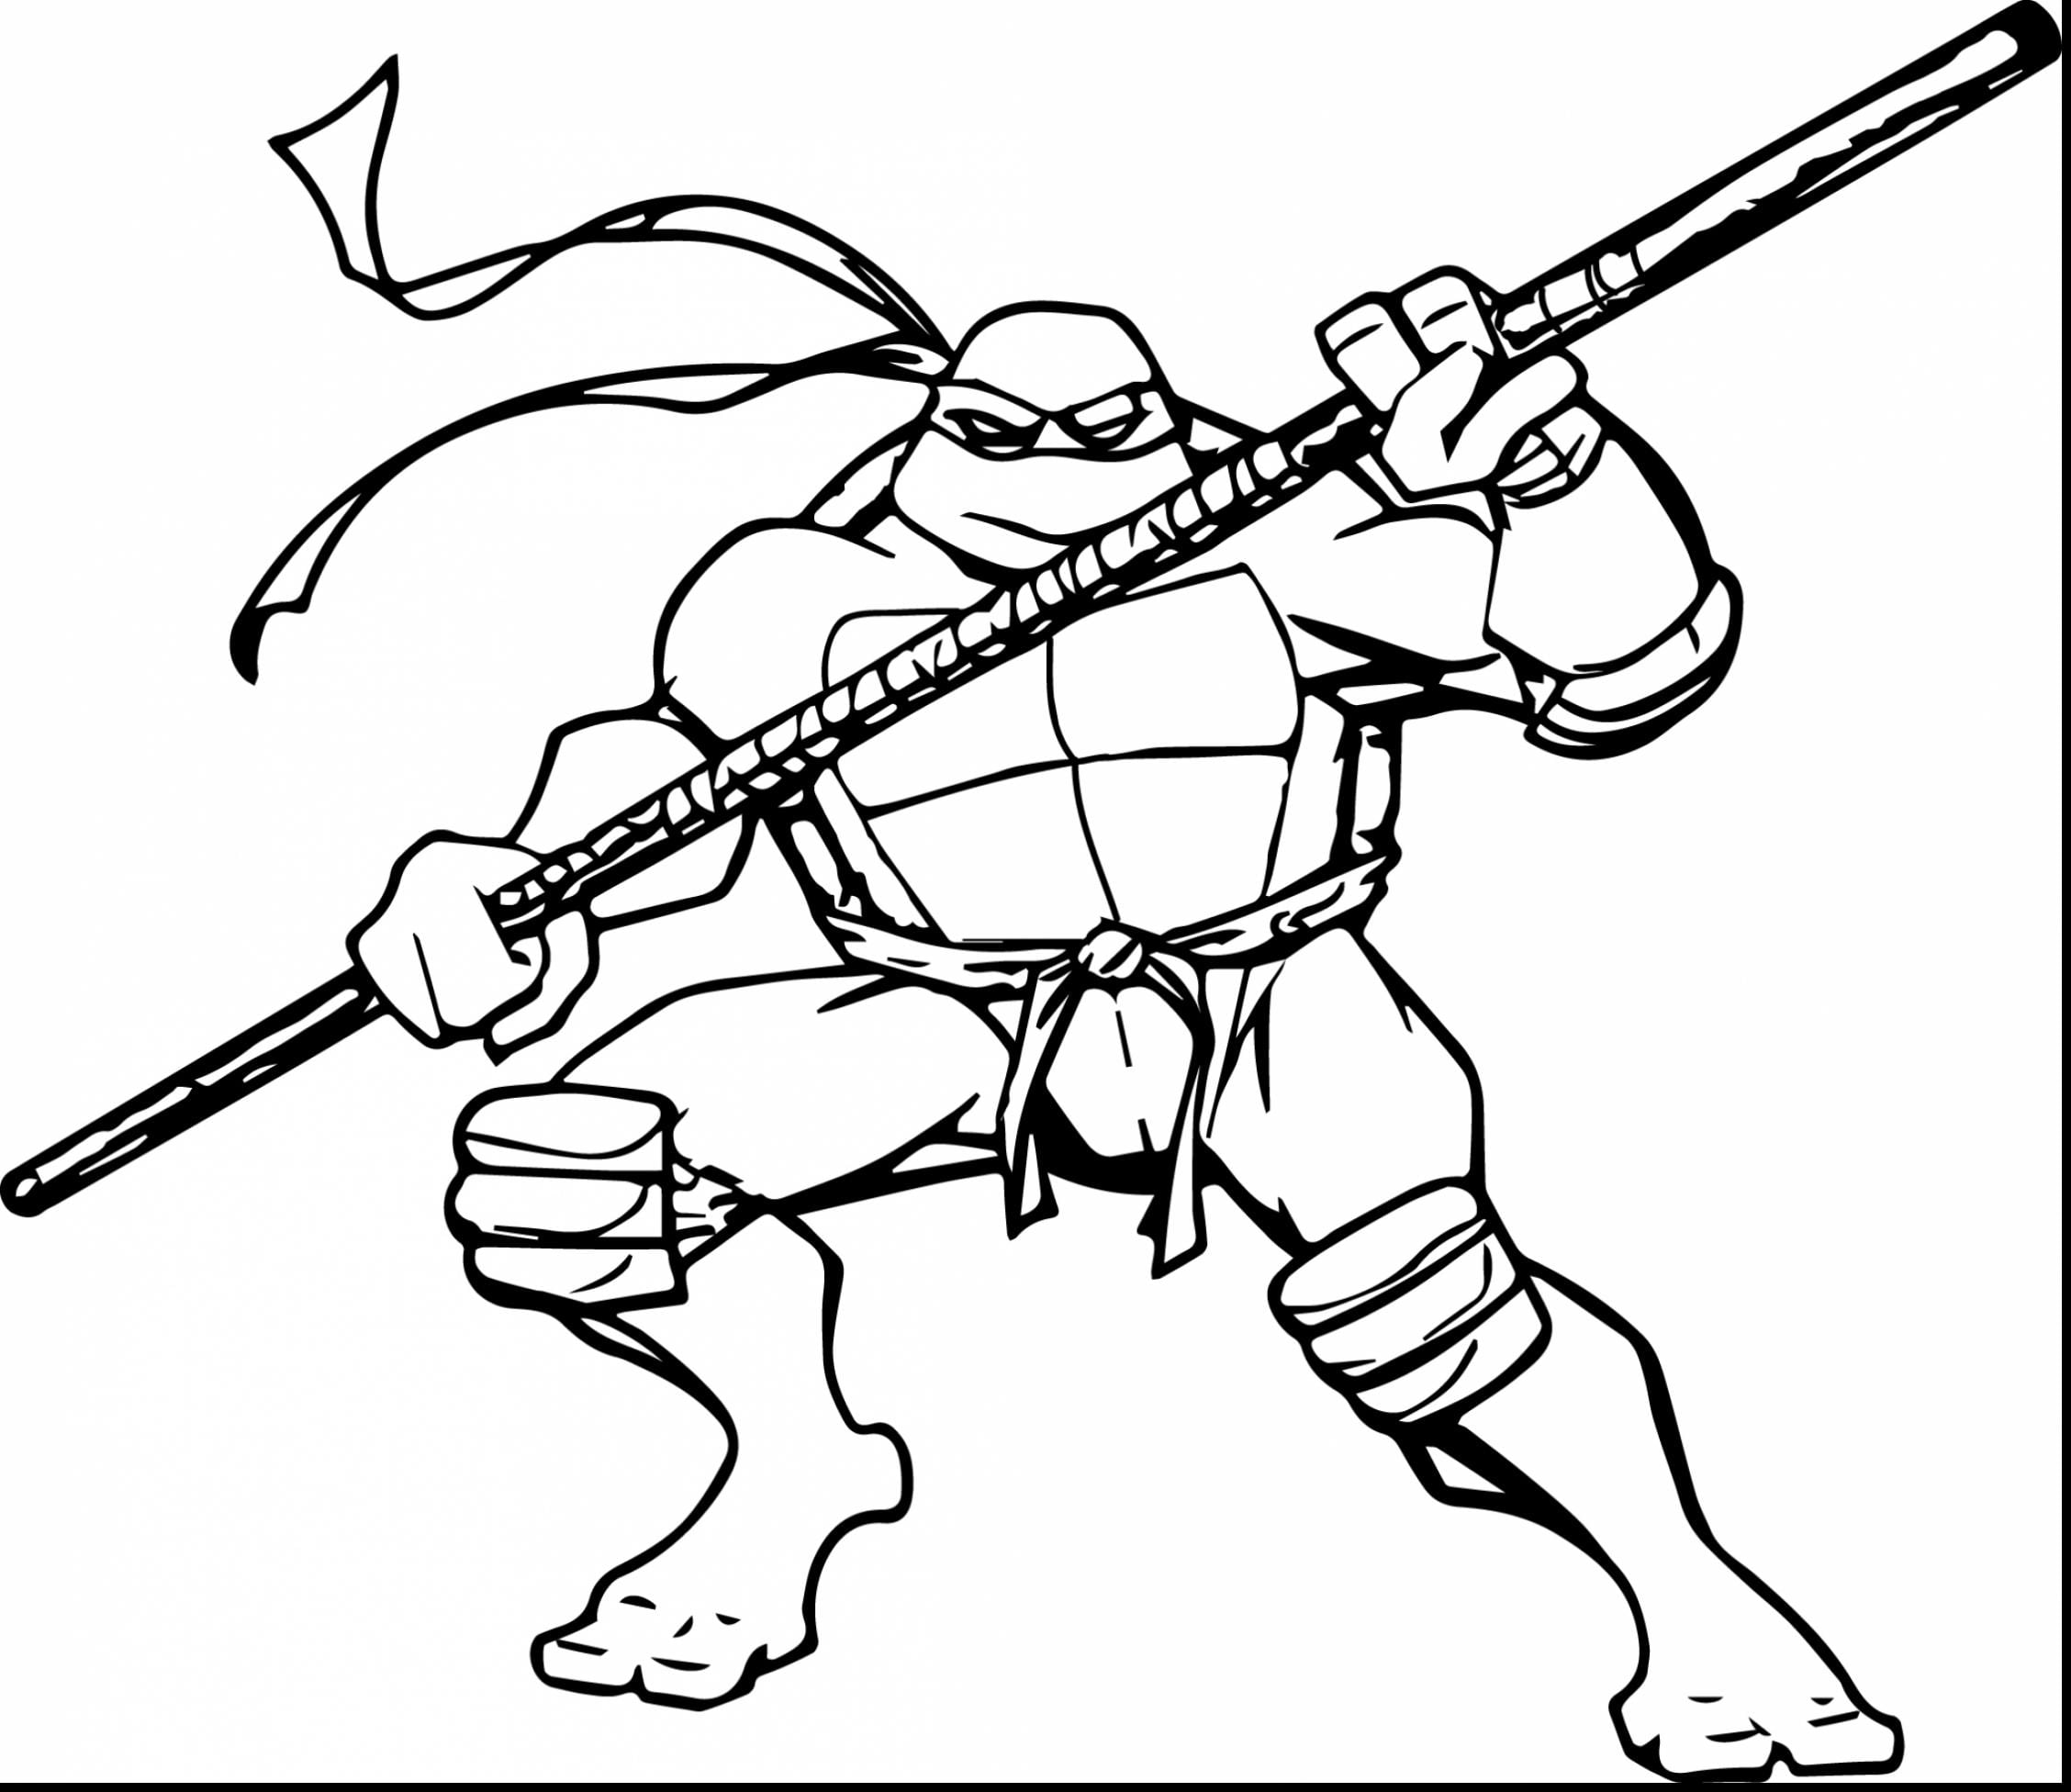 Ninja Turtles Coloring Books 16445 Scott Fay Com And Page